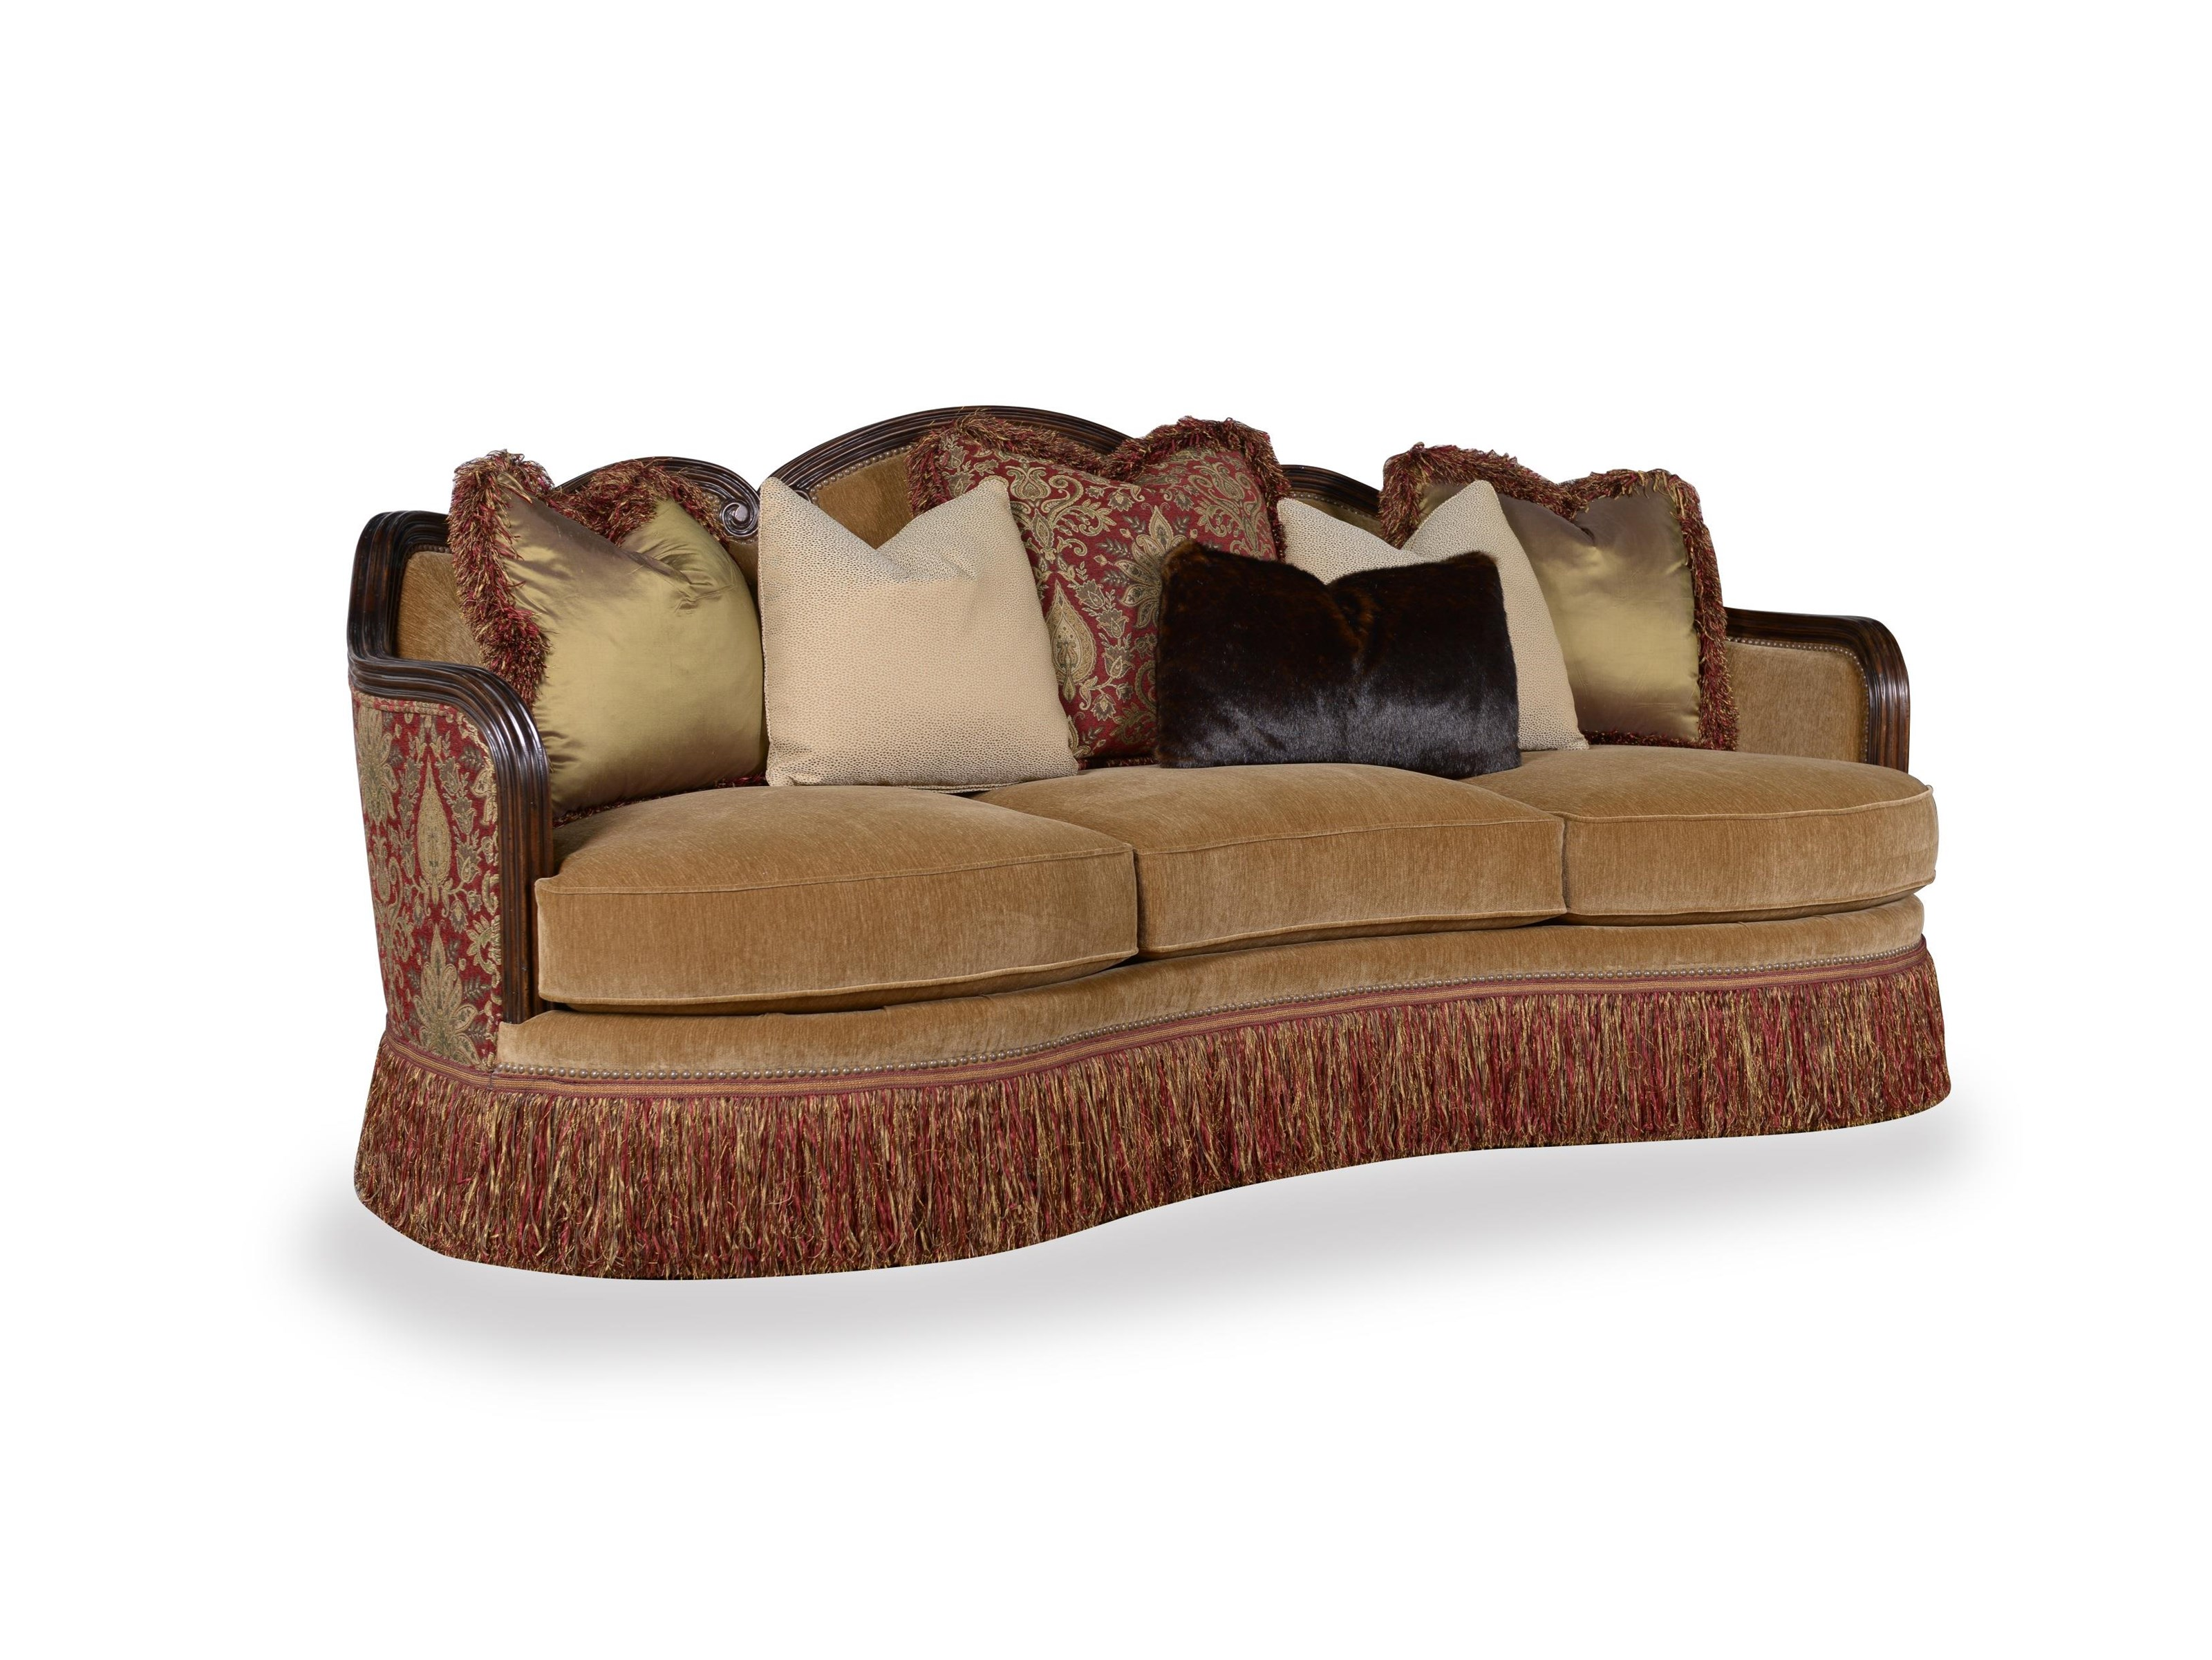 A.R.T. Furniture Inc Giovanna Sofa - Item Number: 509501-5027AB